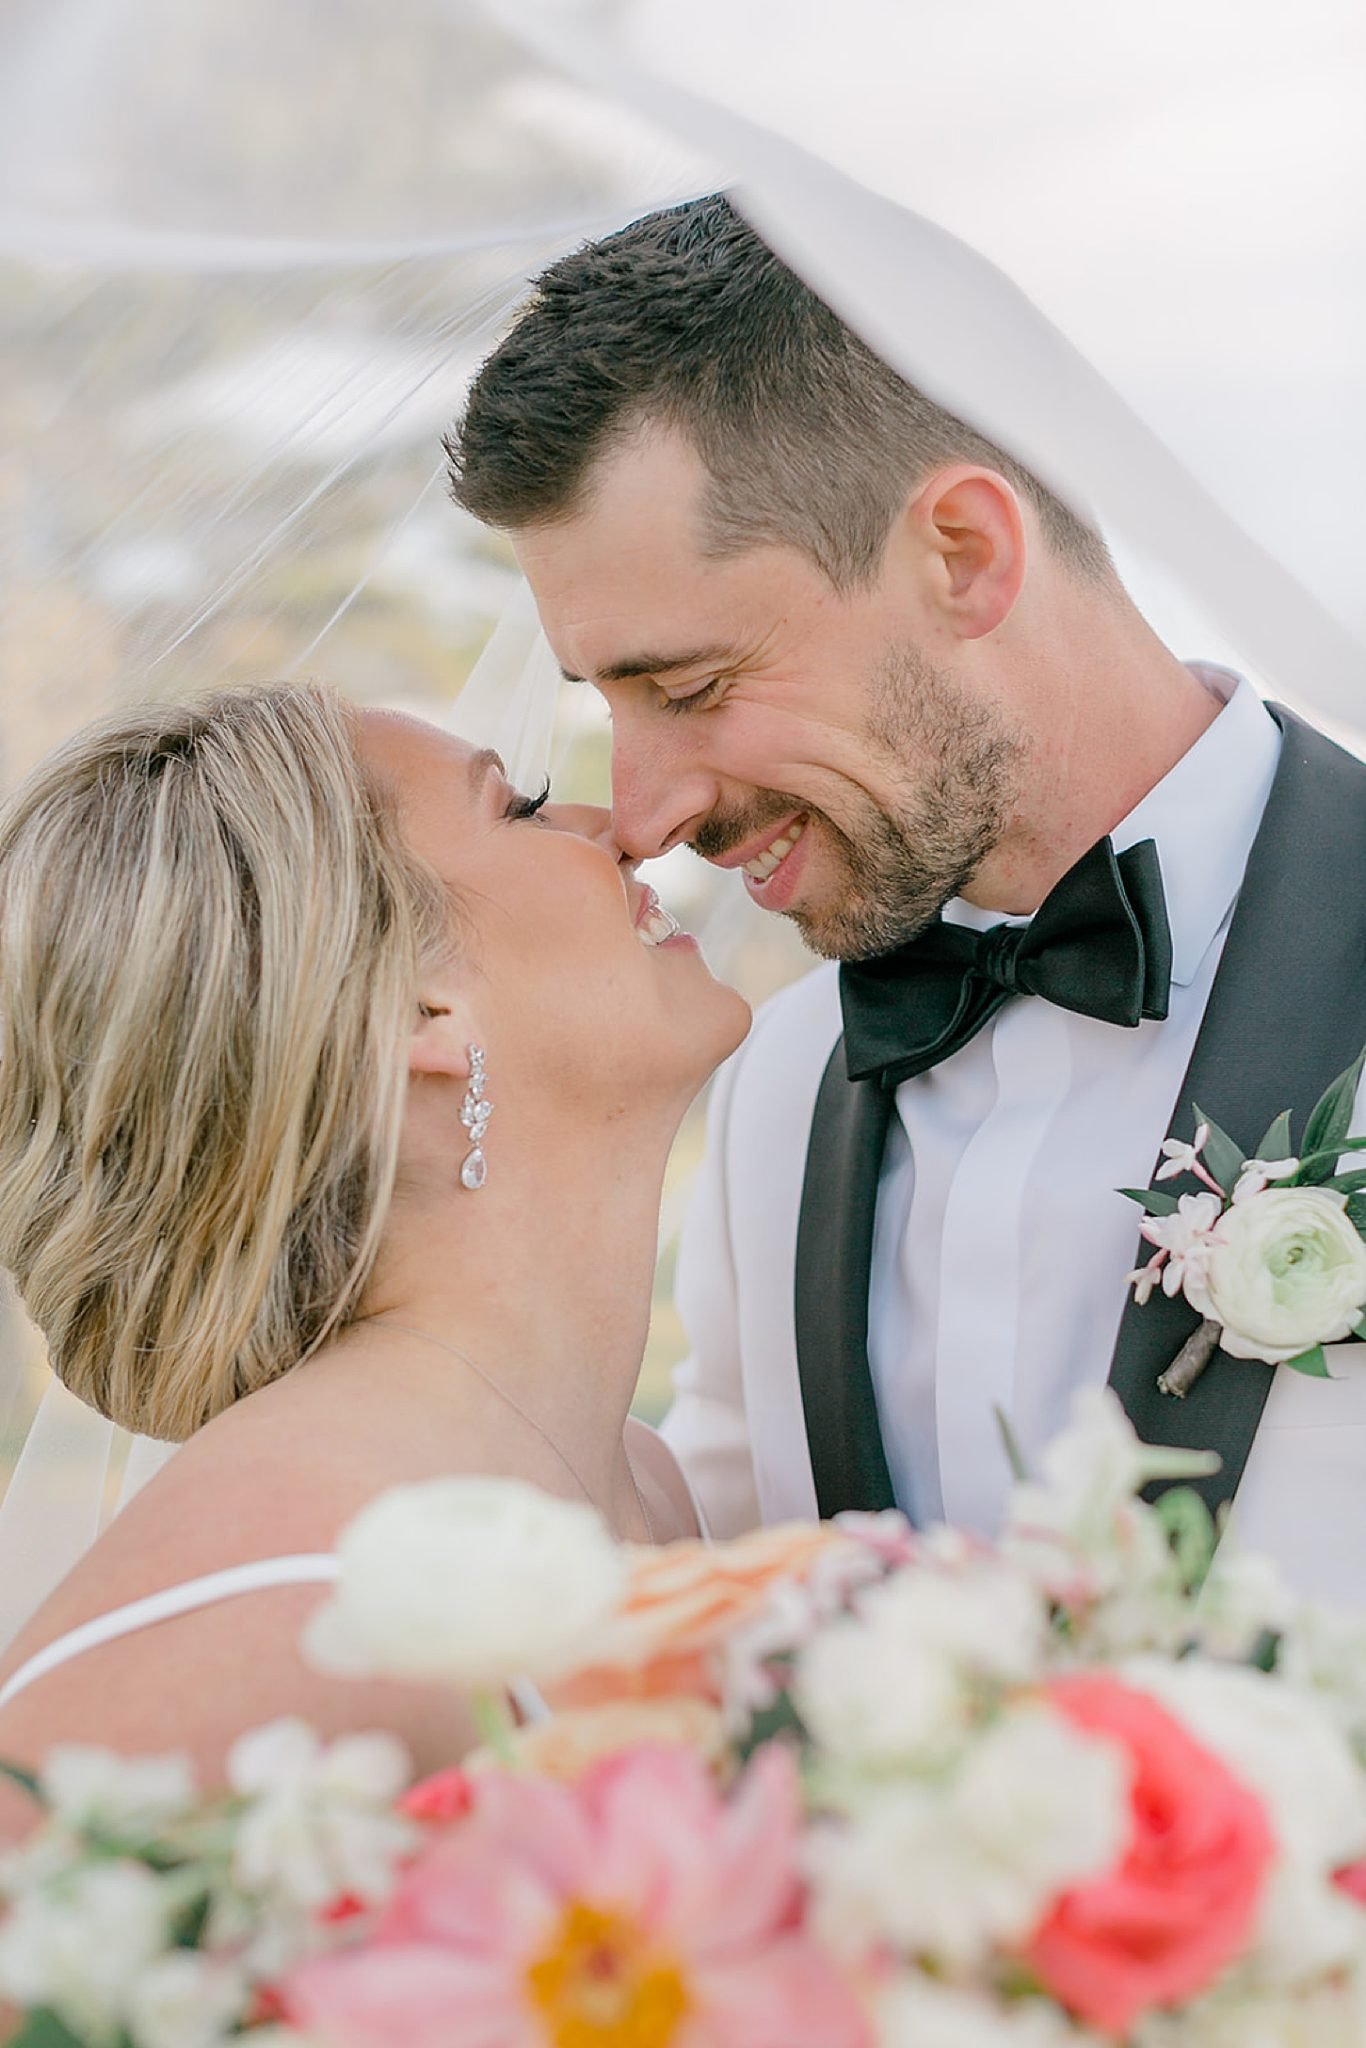 Linwood Country Club Summer Wedding Photography Studio by Magdalena Studios Jenn Kyle 0039 scaled